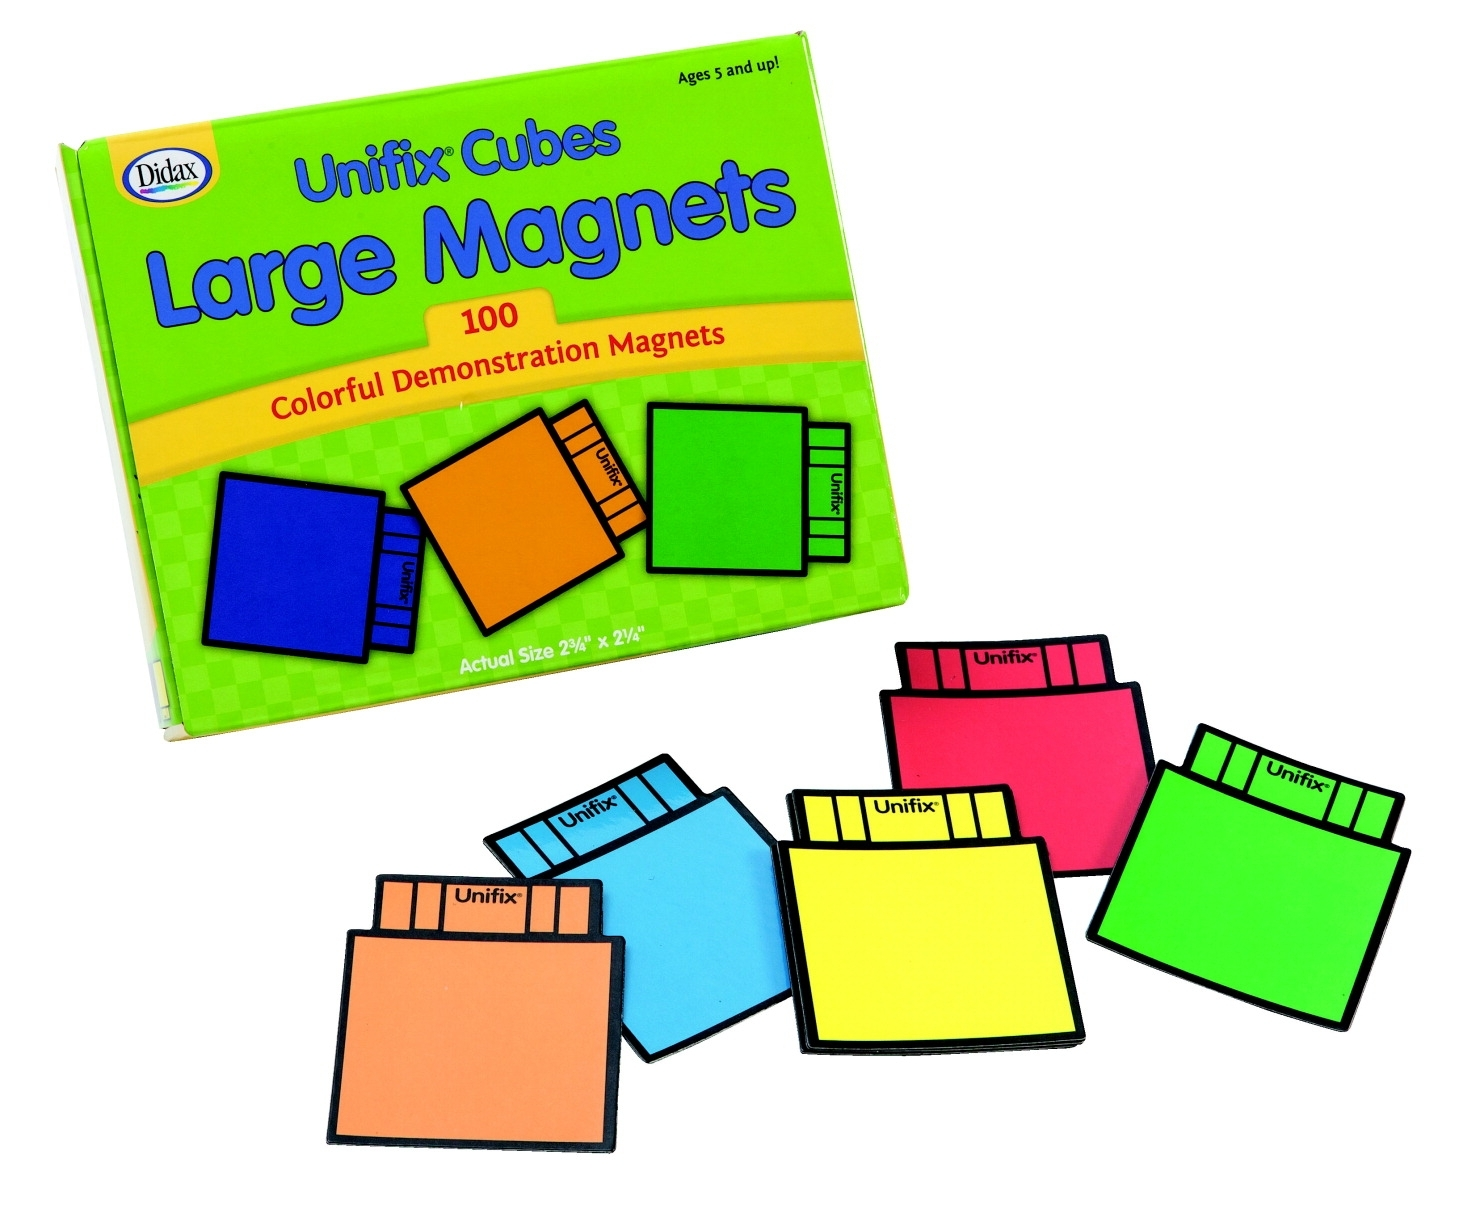 Learning: Science Physics Projects Lessons & Supplies Magnets & Magnetic Products - 210-0613 - Didax Unifix Large Math Magnet Set-assorted Color; Set Of 100 210-0613